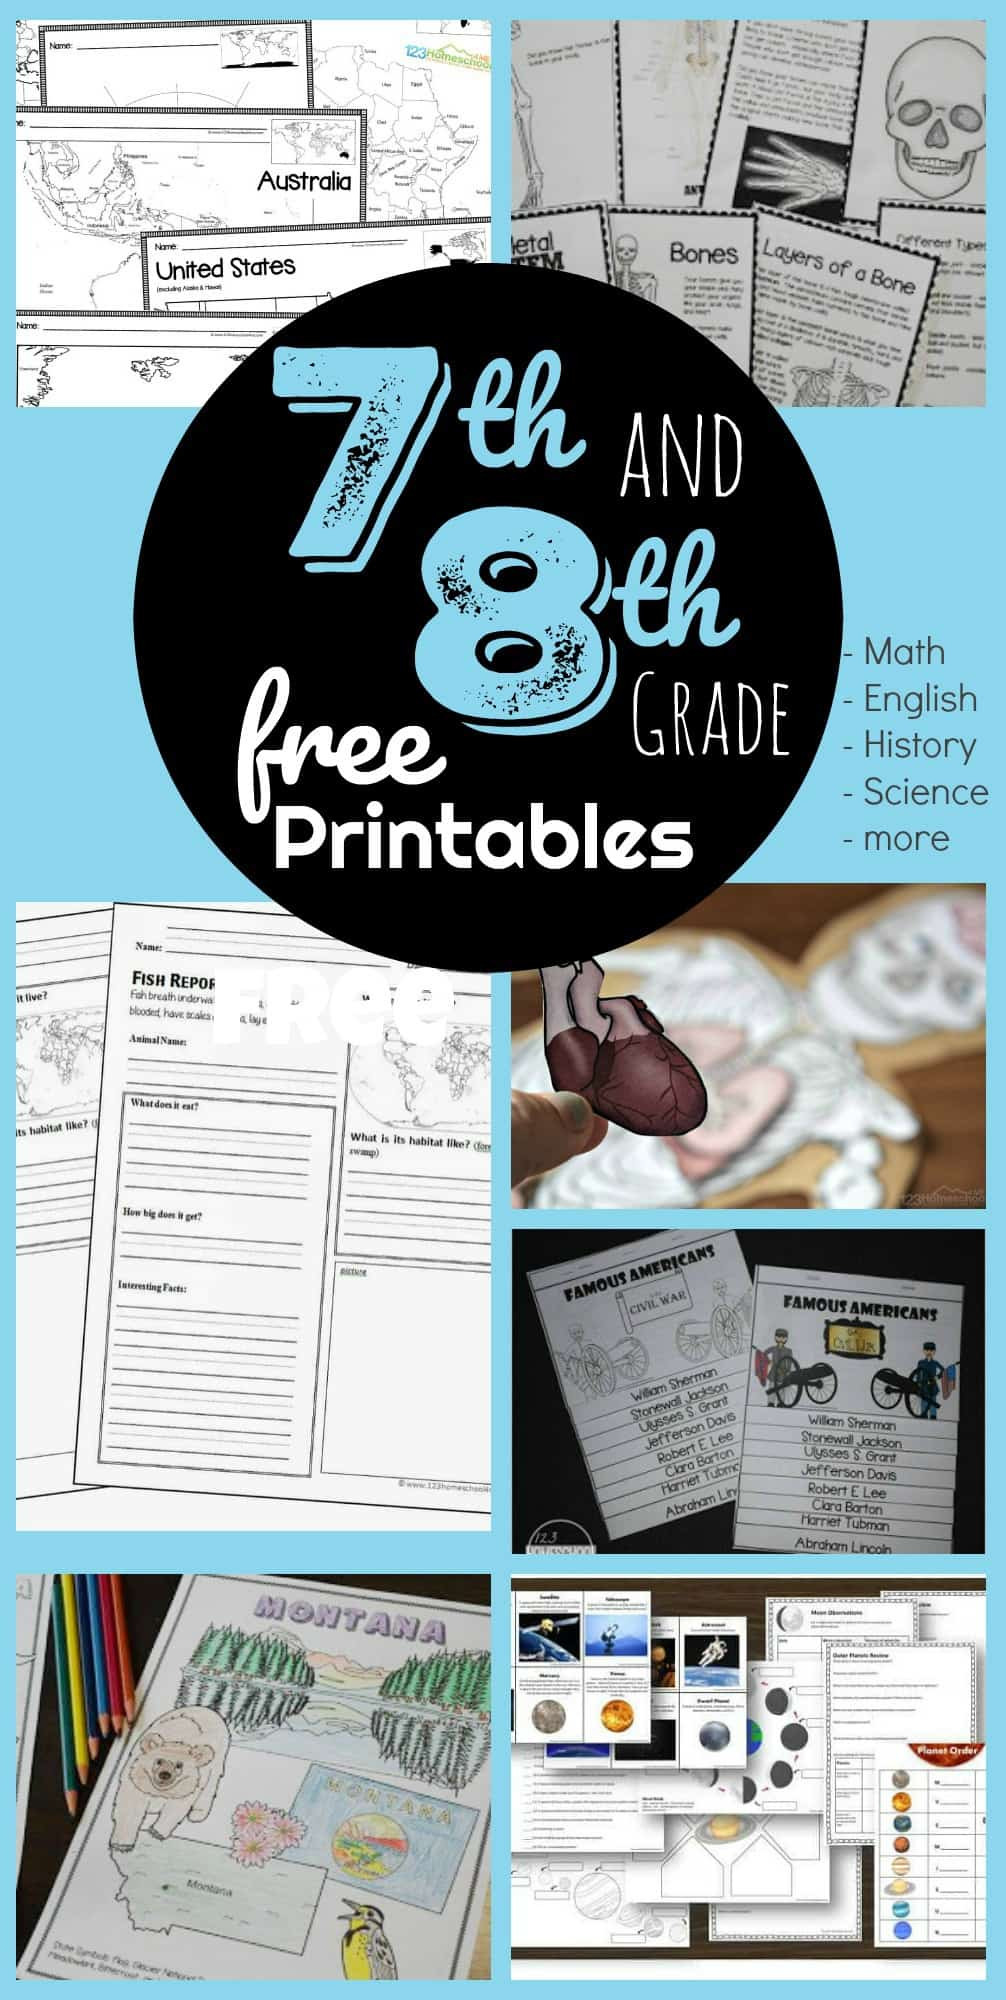 Science 7th Grade Worksheets Free 7th & 8th Grade Worksheets